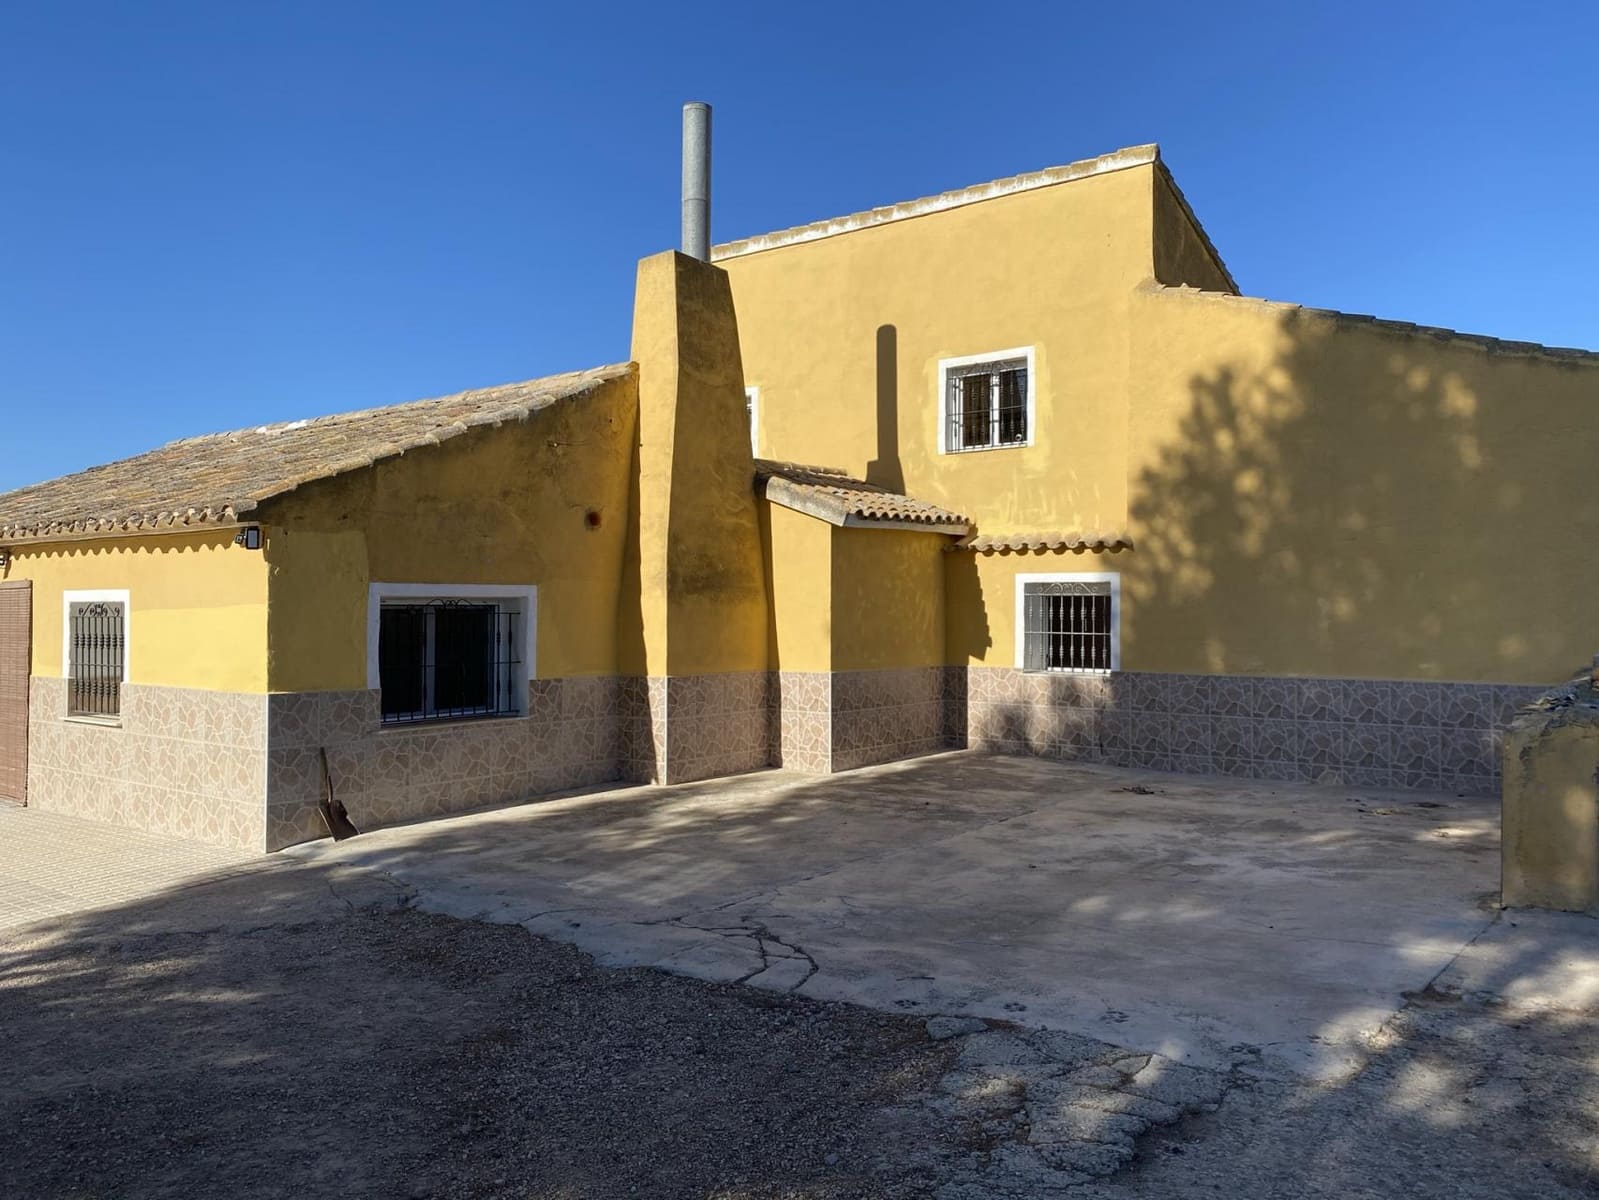 5 bedroom Finca/Country House for sale in Caudete with garage - € 99,995 (Ref: 5643021)